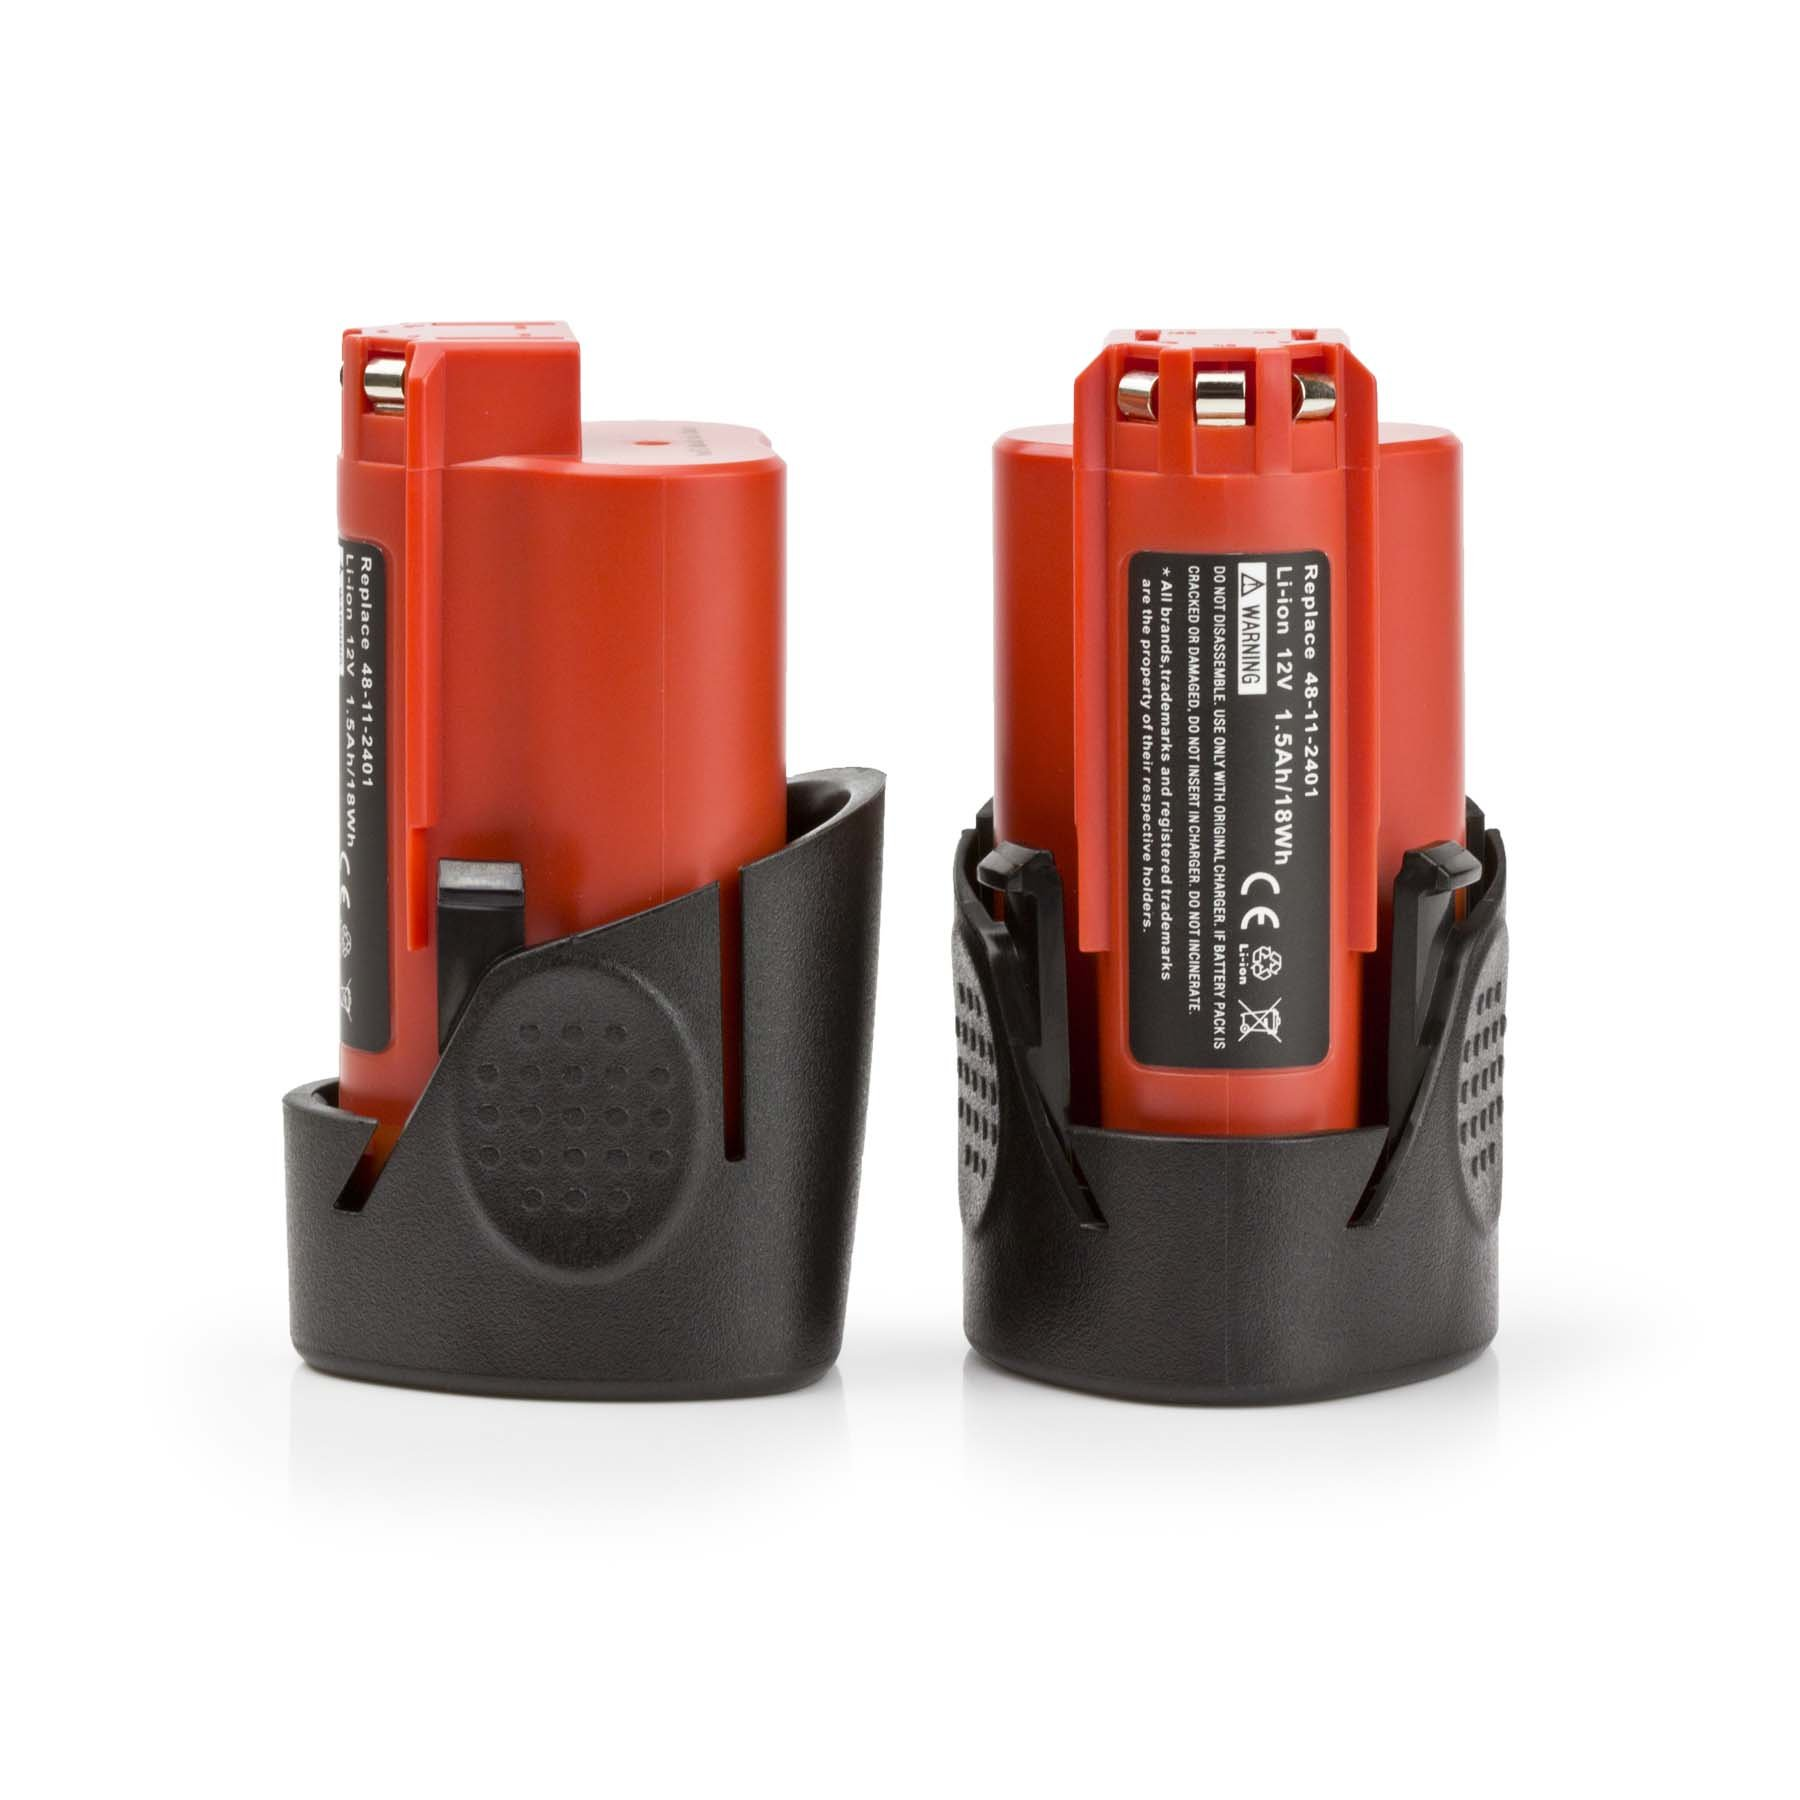 2 Pack ExpertPower 12-volt Lithium Battery for Milwaukee M12, 48-11-2401, 48-11-2402, 48-11-2420, 48-11-2430, 48-11-2440, 48-11-2460, 48-11-2411, 48-11-2412